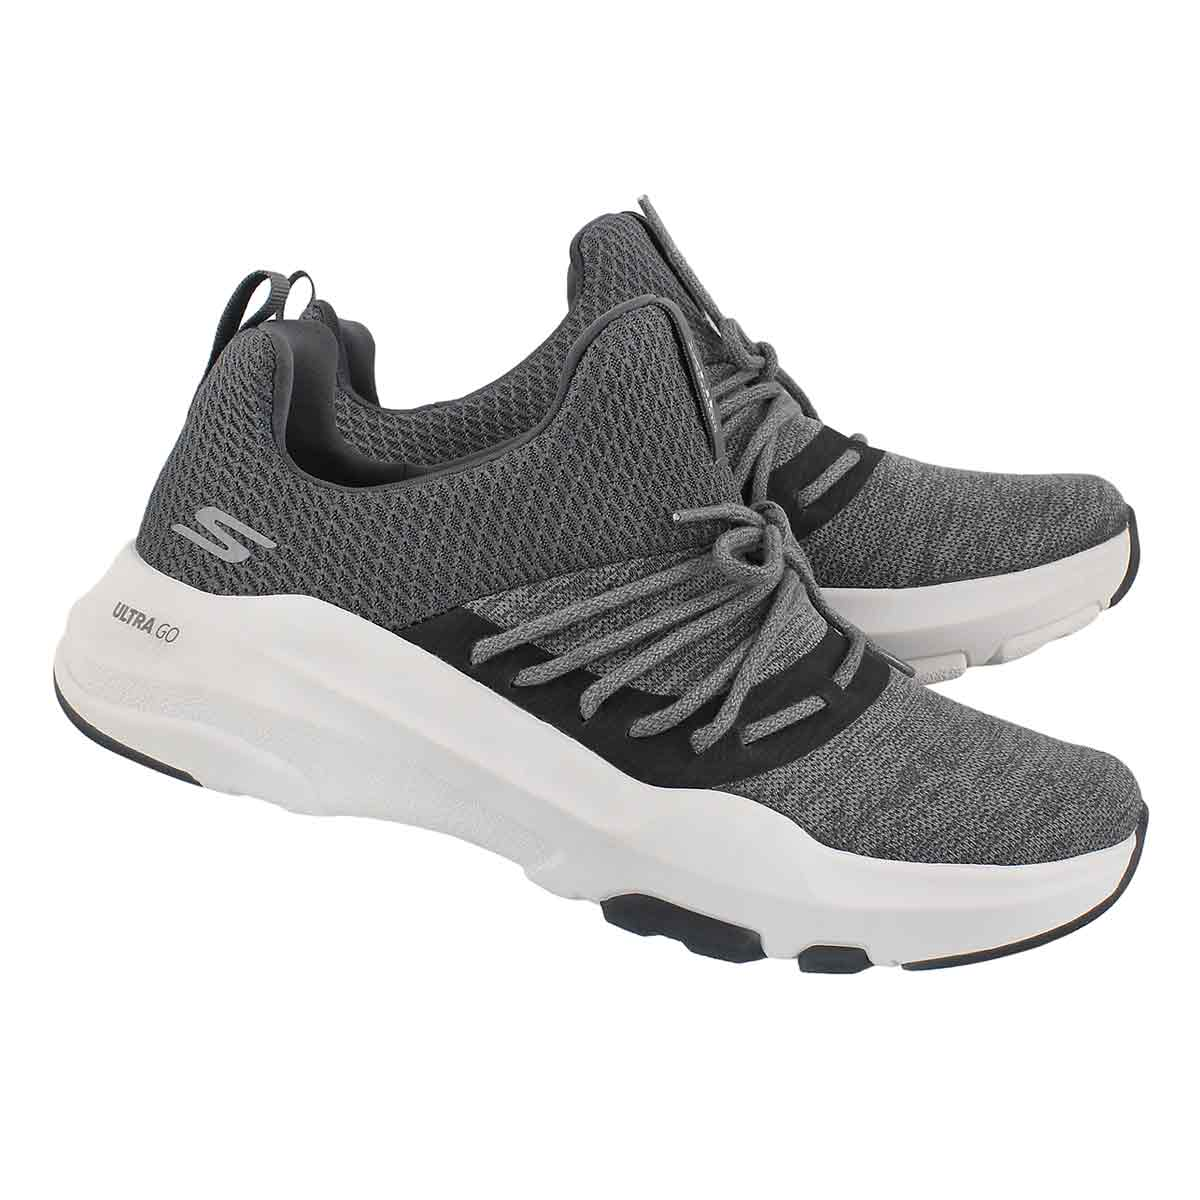 Mns ONE Element Ultra charcoal snkr